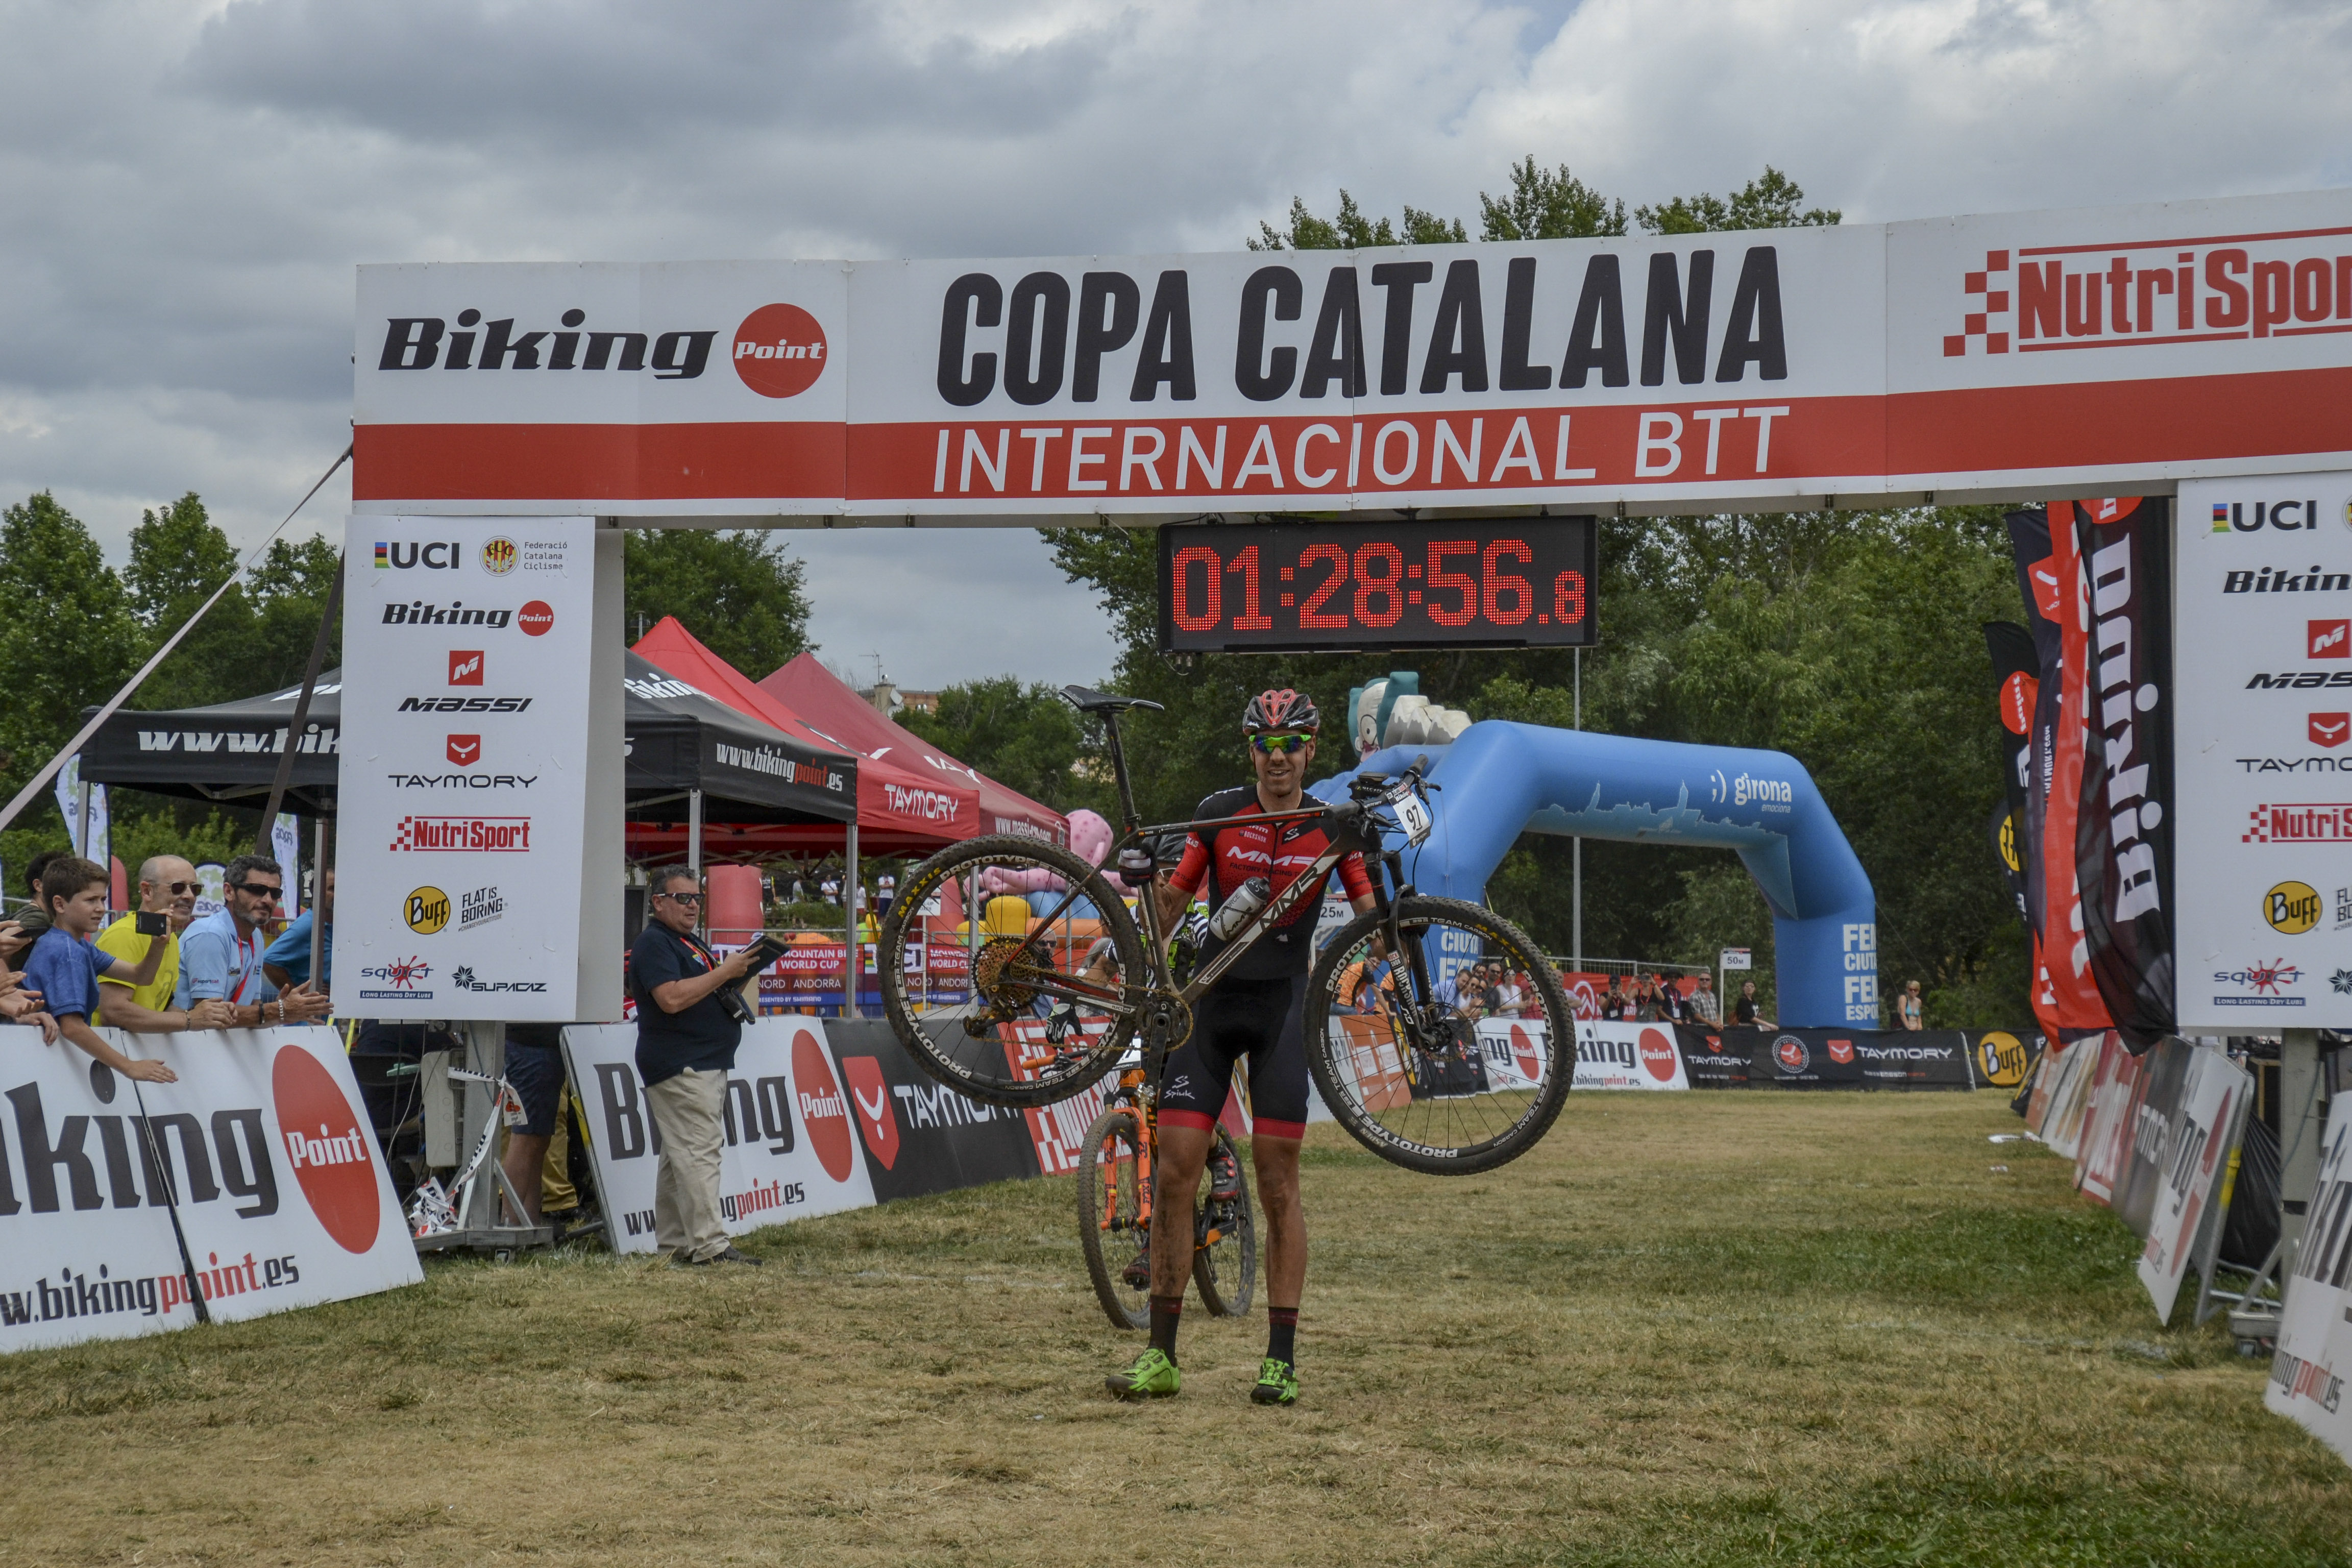 David Valero reafirma su gran momento�conquistando�la Copa Catalana Internacional BTT Biking Point de�Sea Otter Europe